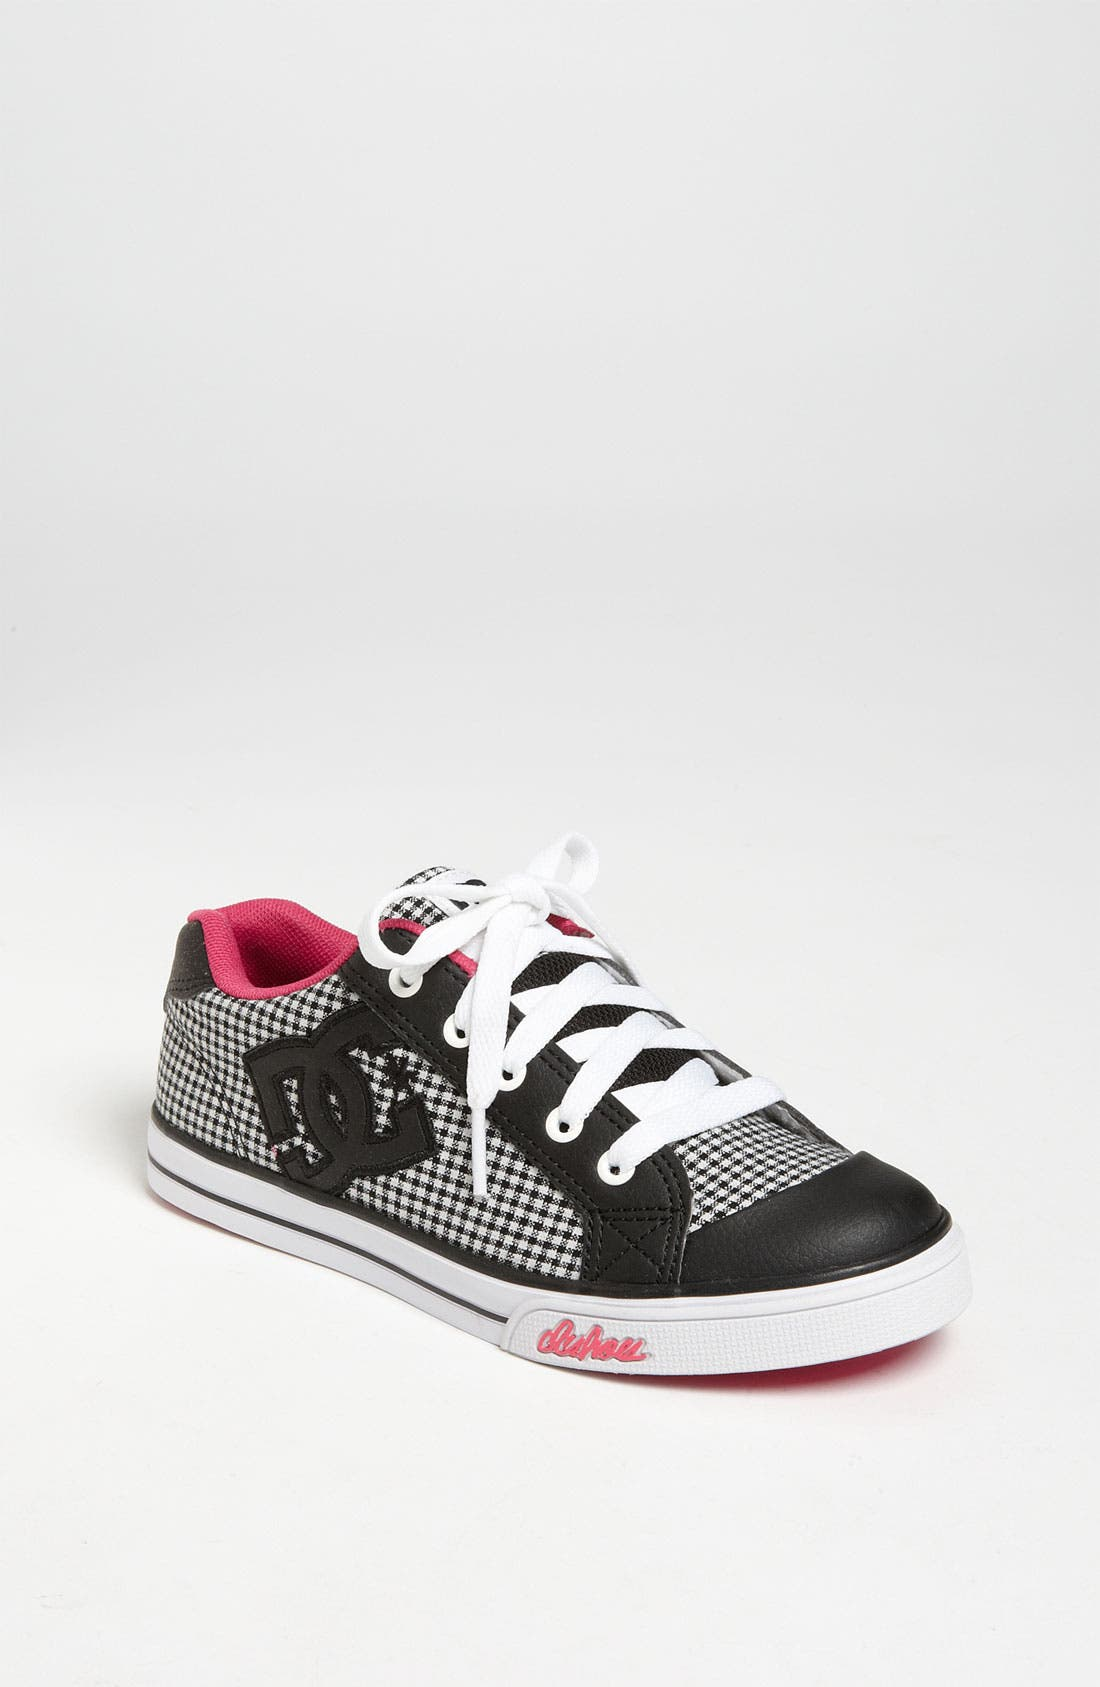 Alternate Image 1 Selected - DC Shoes 'Chelsea Charm' Sneaker (Toddler, Little Kid & Big Kid)